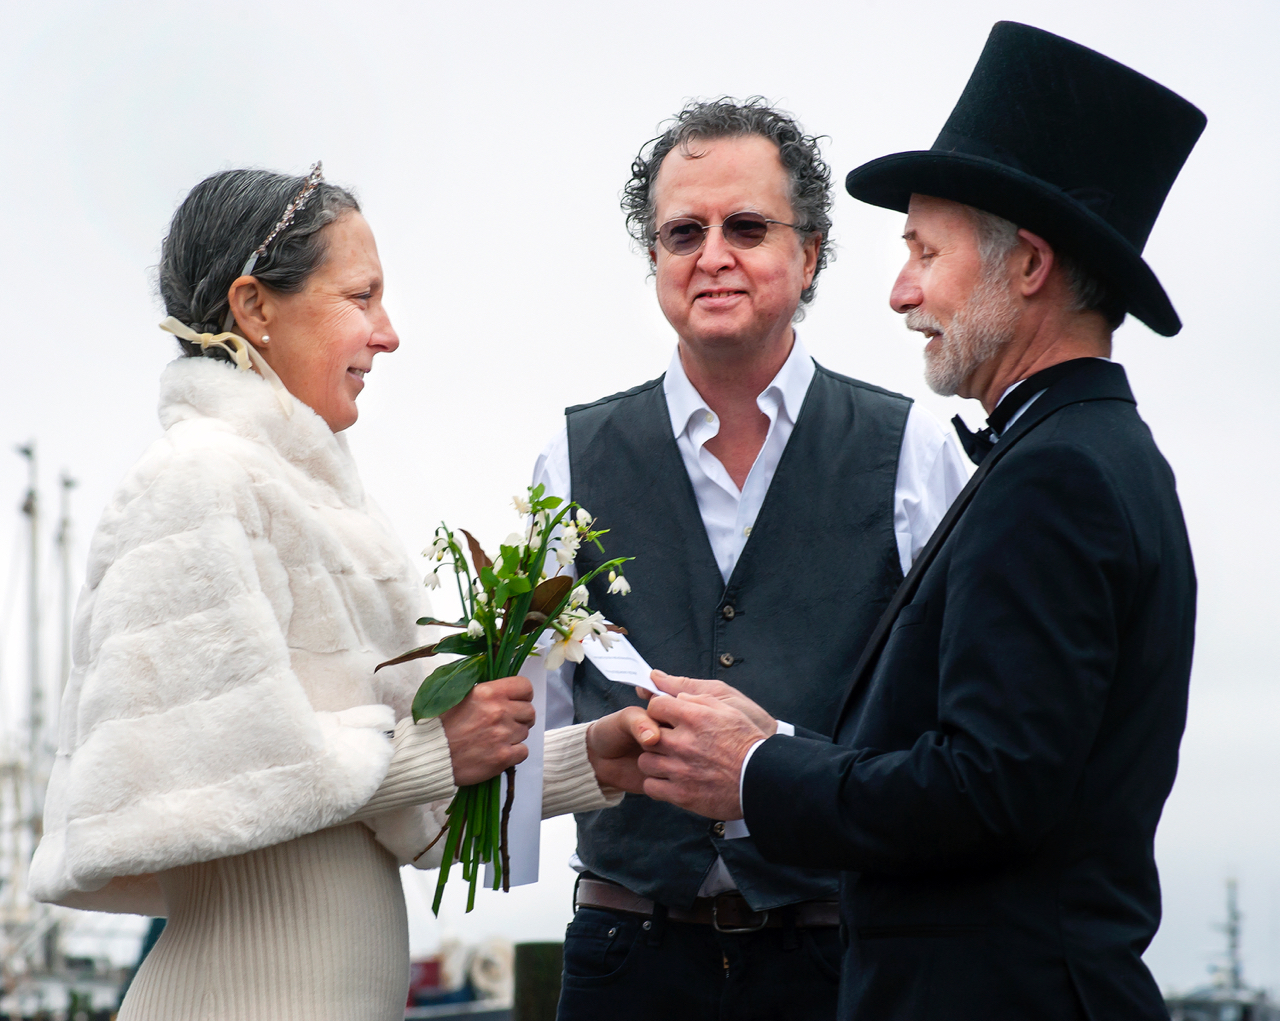 Bernie Harberts, Julia Carpenter, reading wedding vows